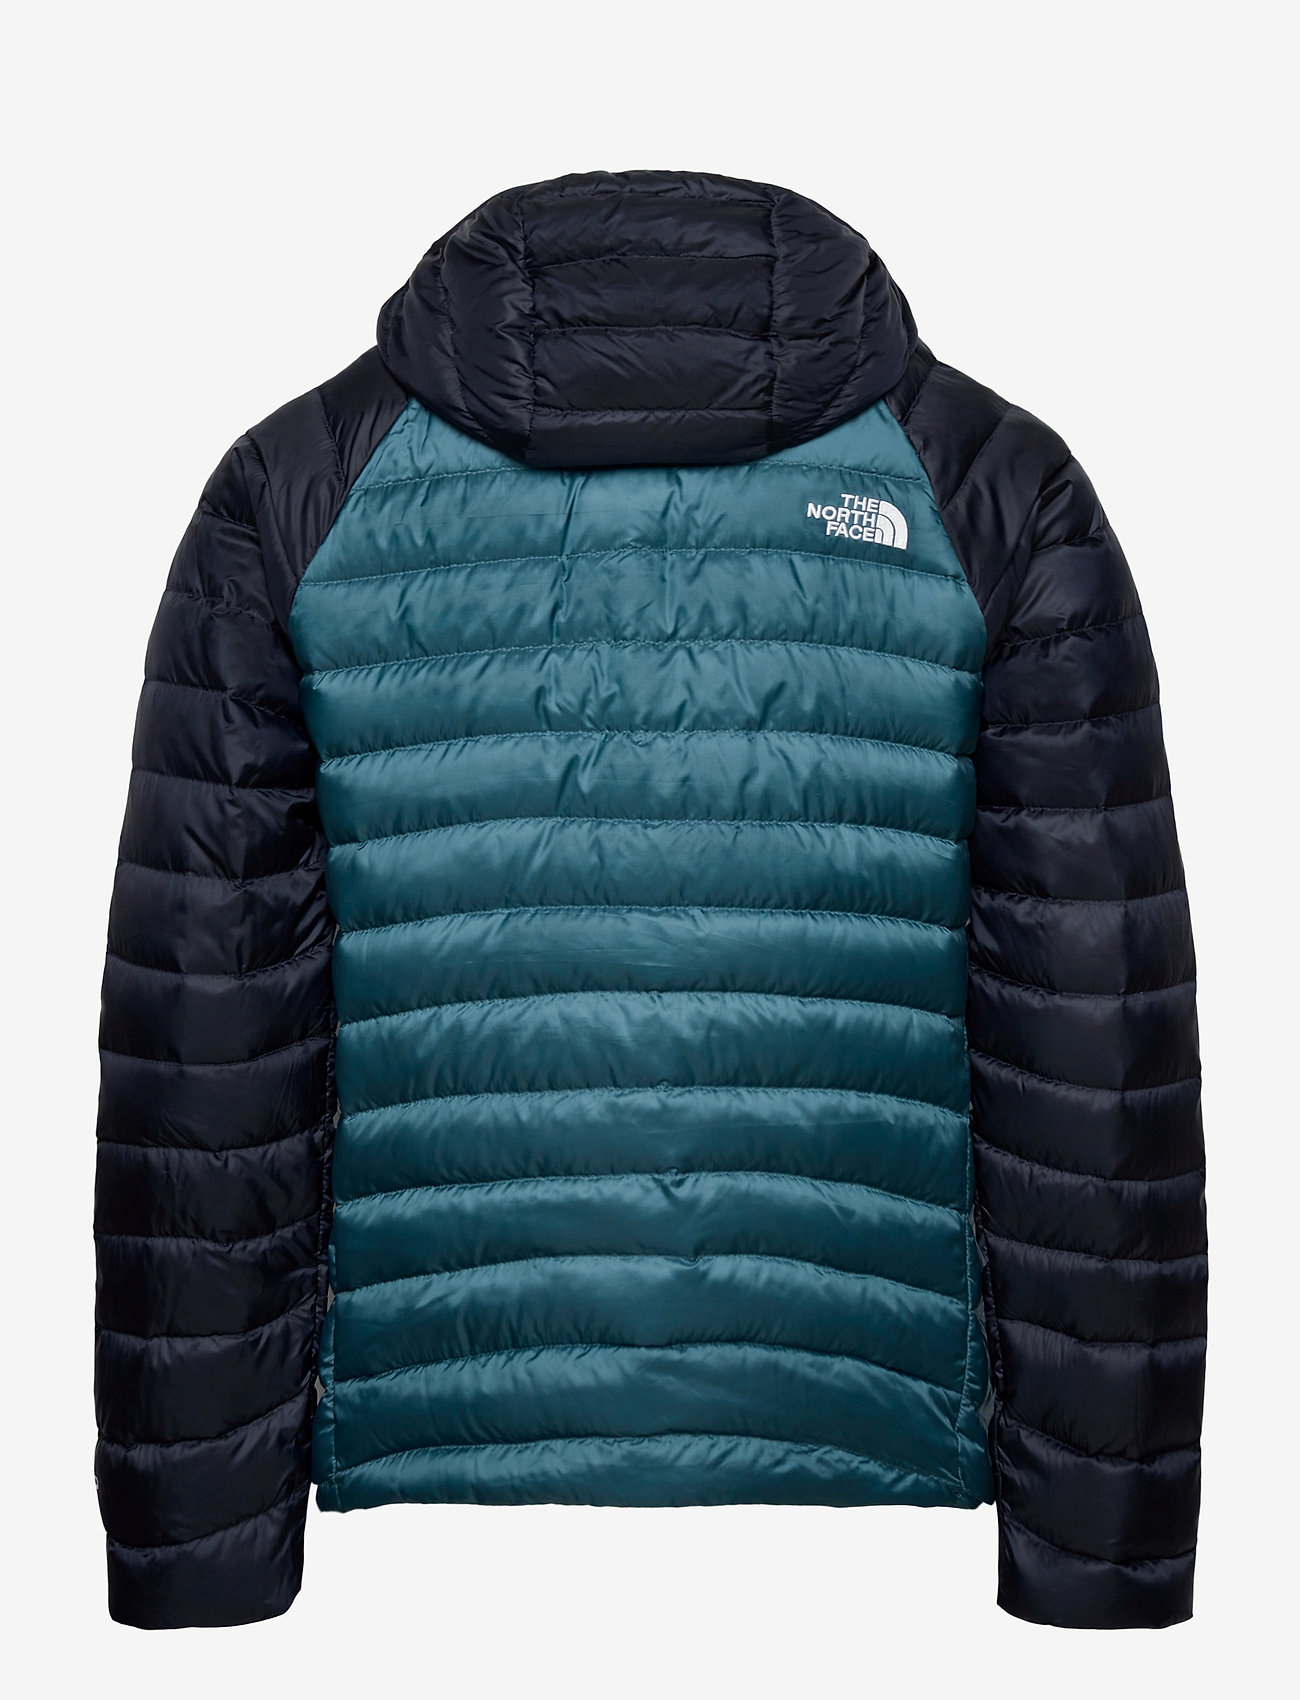 The North Face M TREVAIL HOODIE - Jakker og frakker MALLARD BLUE/URBAN NAVY - Menn Klær